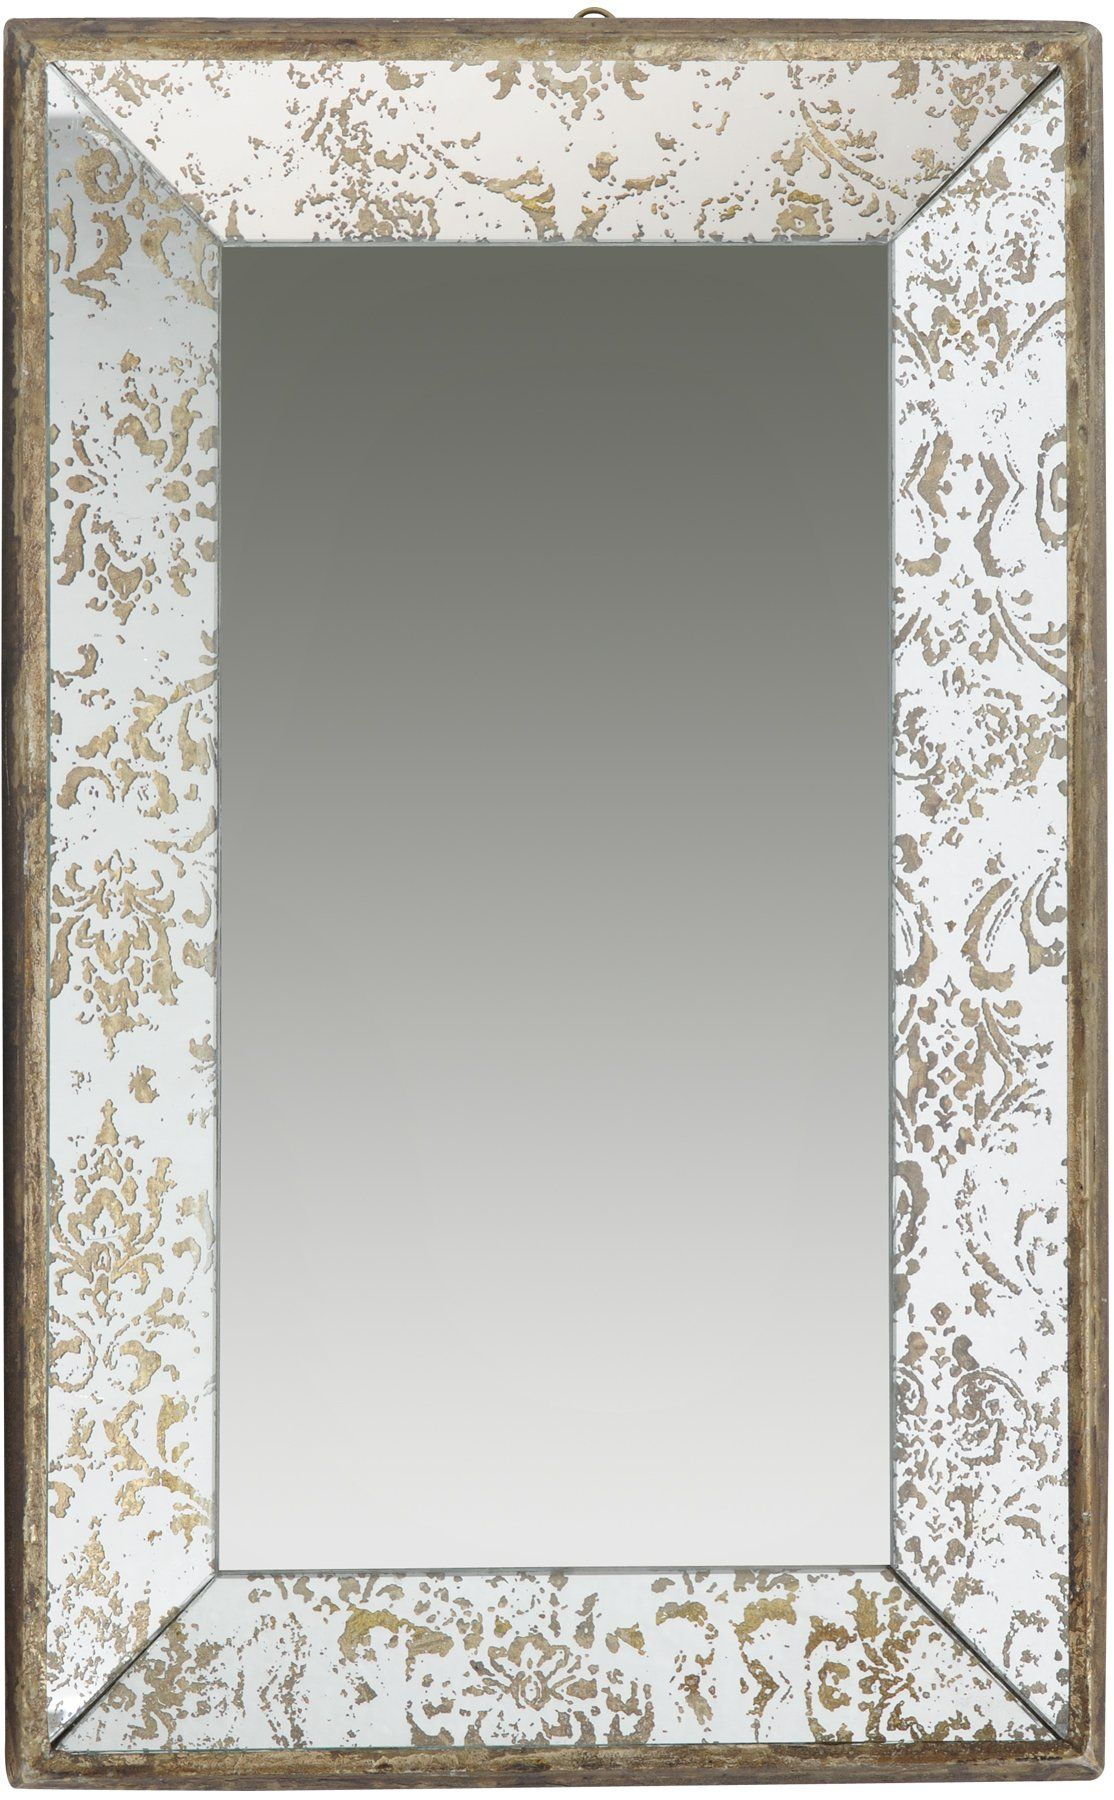 A B Home 31500 Antique Style Frameless Wall Mirror Tray 20 By 12 Inch Create Dazzling Displays And Centerpieces For Yo Wall Mirrors For Sale Unique Home Decor